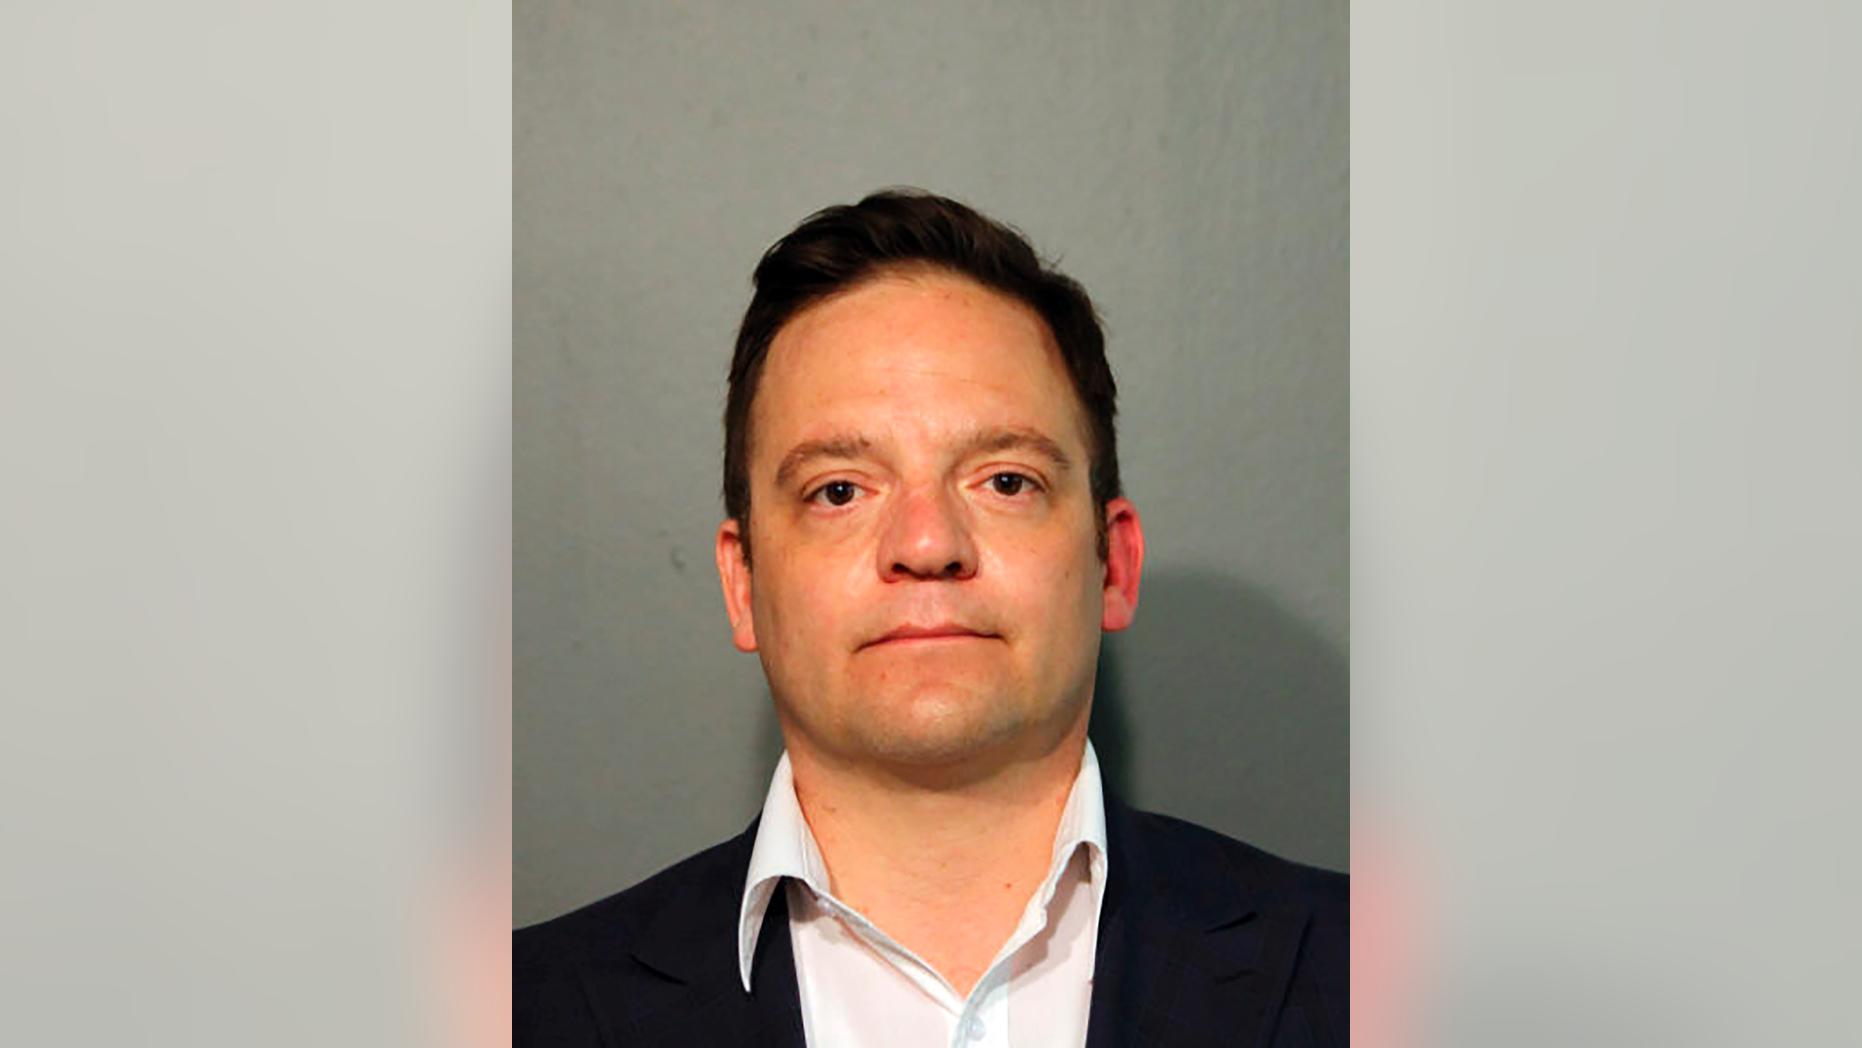 """This Tuesday, May 14, 2019 booking photo released by the Chicago Police Department shows Chicago Alderman Proco """"Joe"""" Moreno. Police have arrested the Chicago alderman on charges alleging that he lied when he reported his car had been stolen in January. Police say a news release that Moreno was arrested May 14 on felony charges of insurance fraud and obstruction of justice. (Chicago Police Department via AP)"""